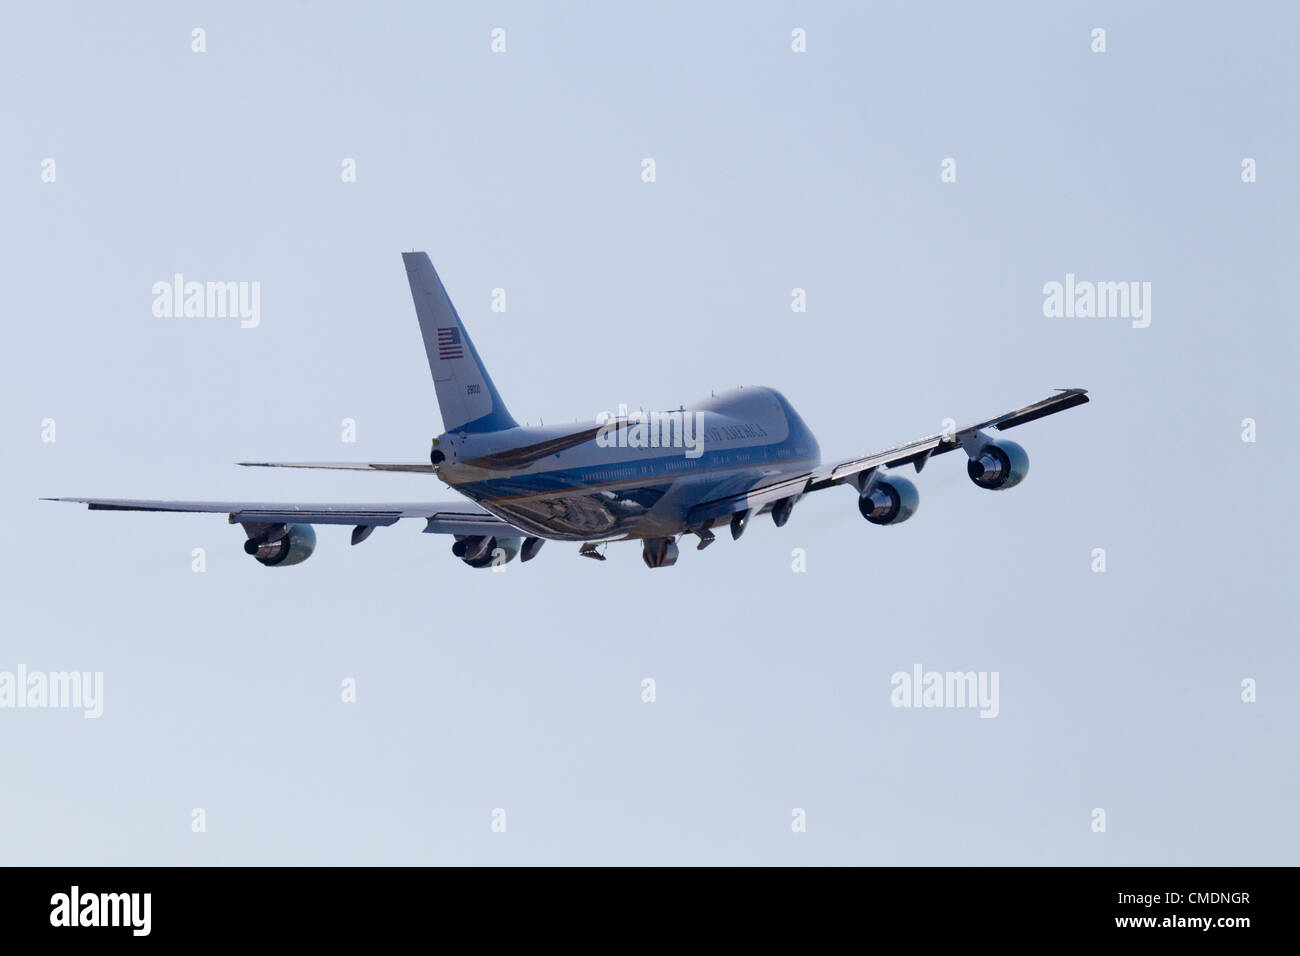 President Obama Departs from King County Airport/Boeing Field, Seattle, Washington on Air Force One, July 25, 2012 - Stock Image